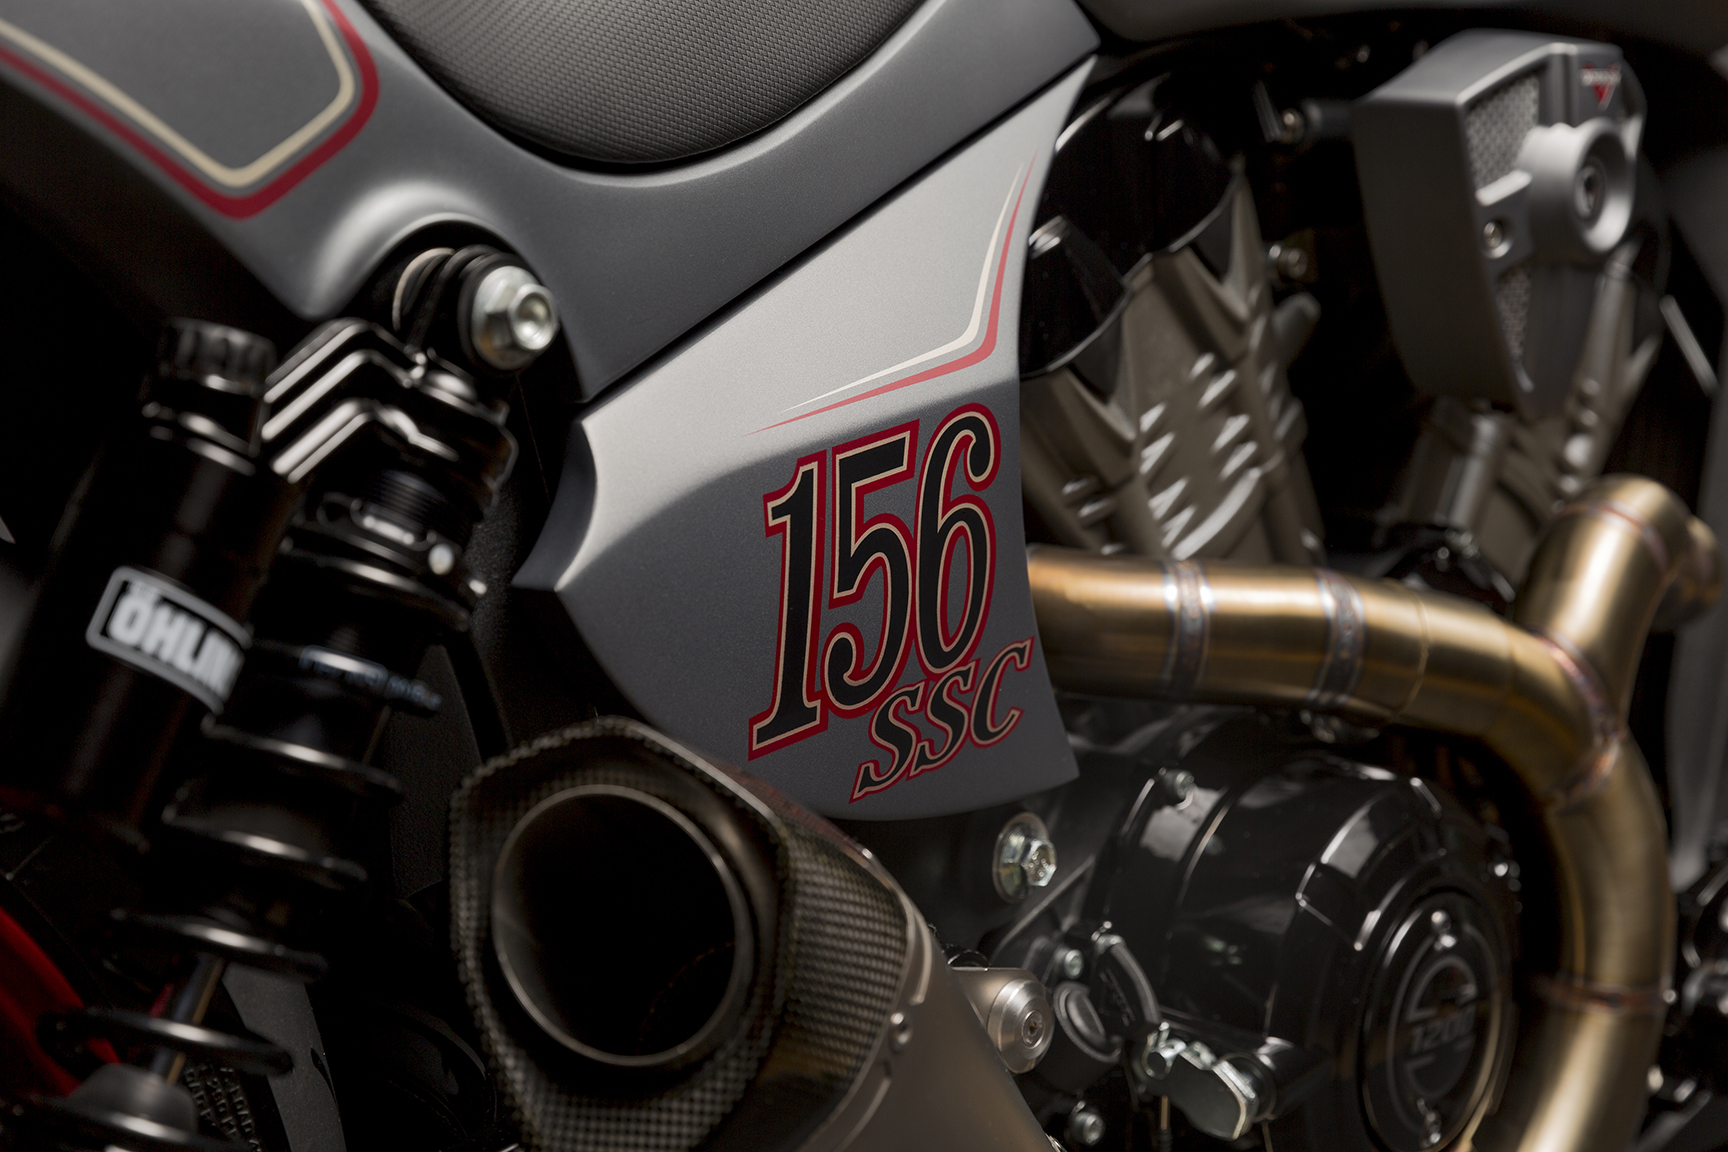 Project 156-based production engine will power forthcoming new Victory